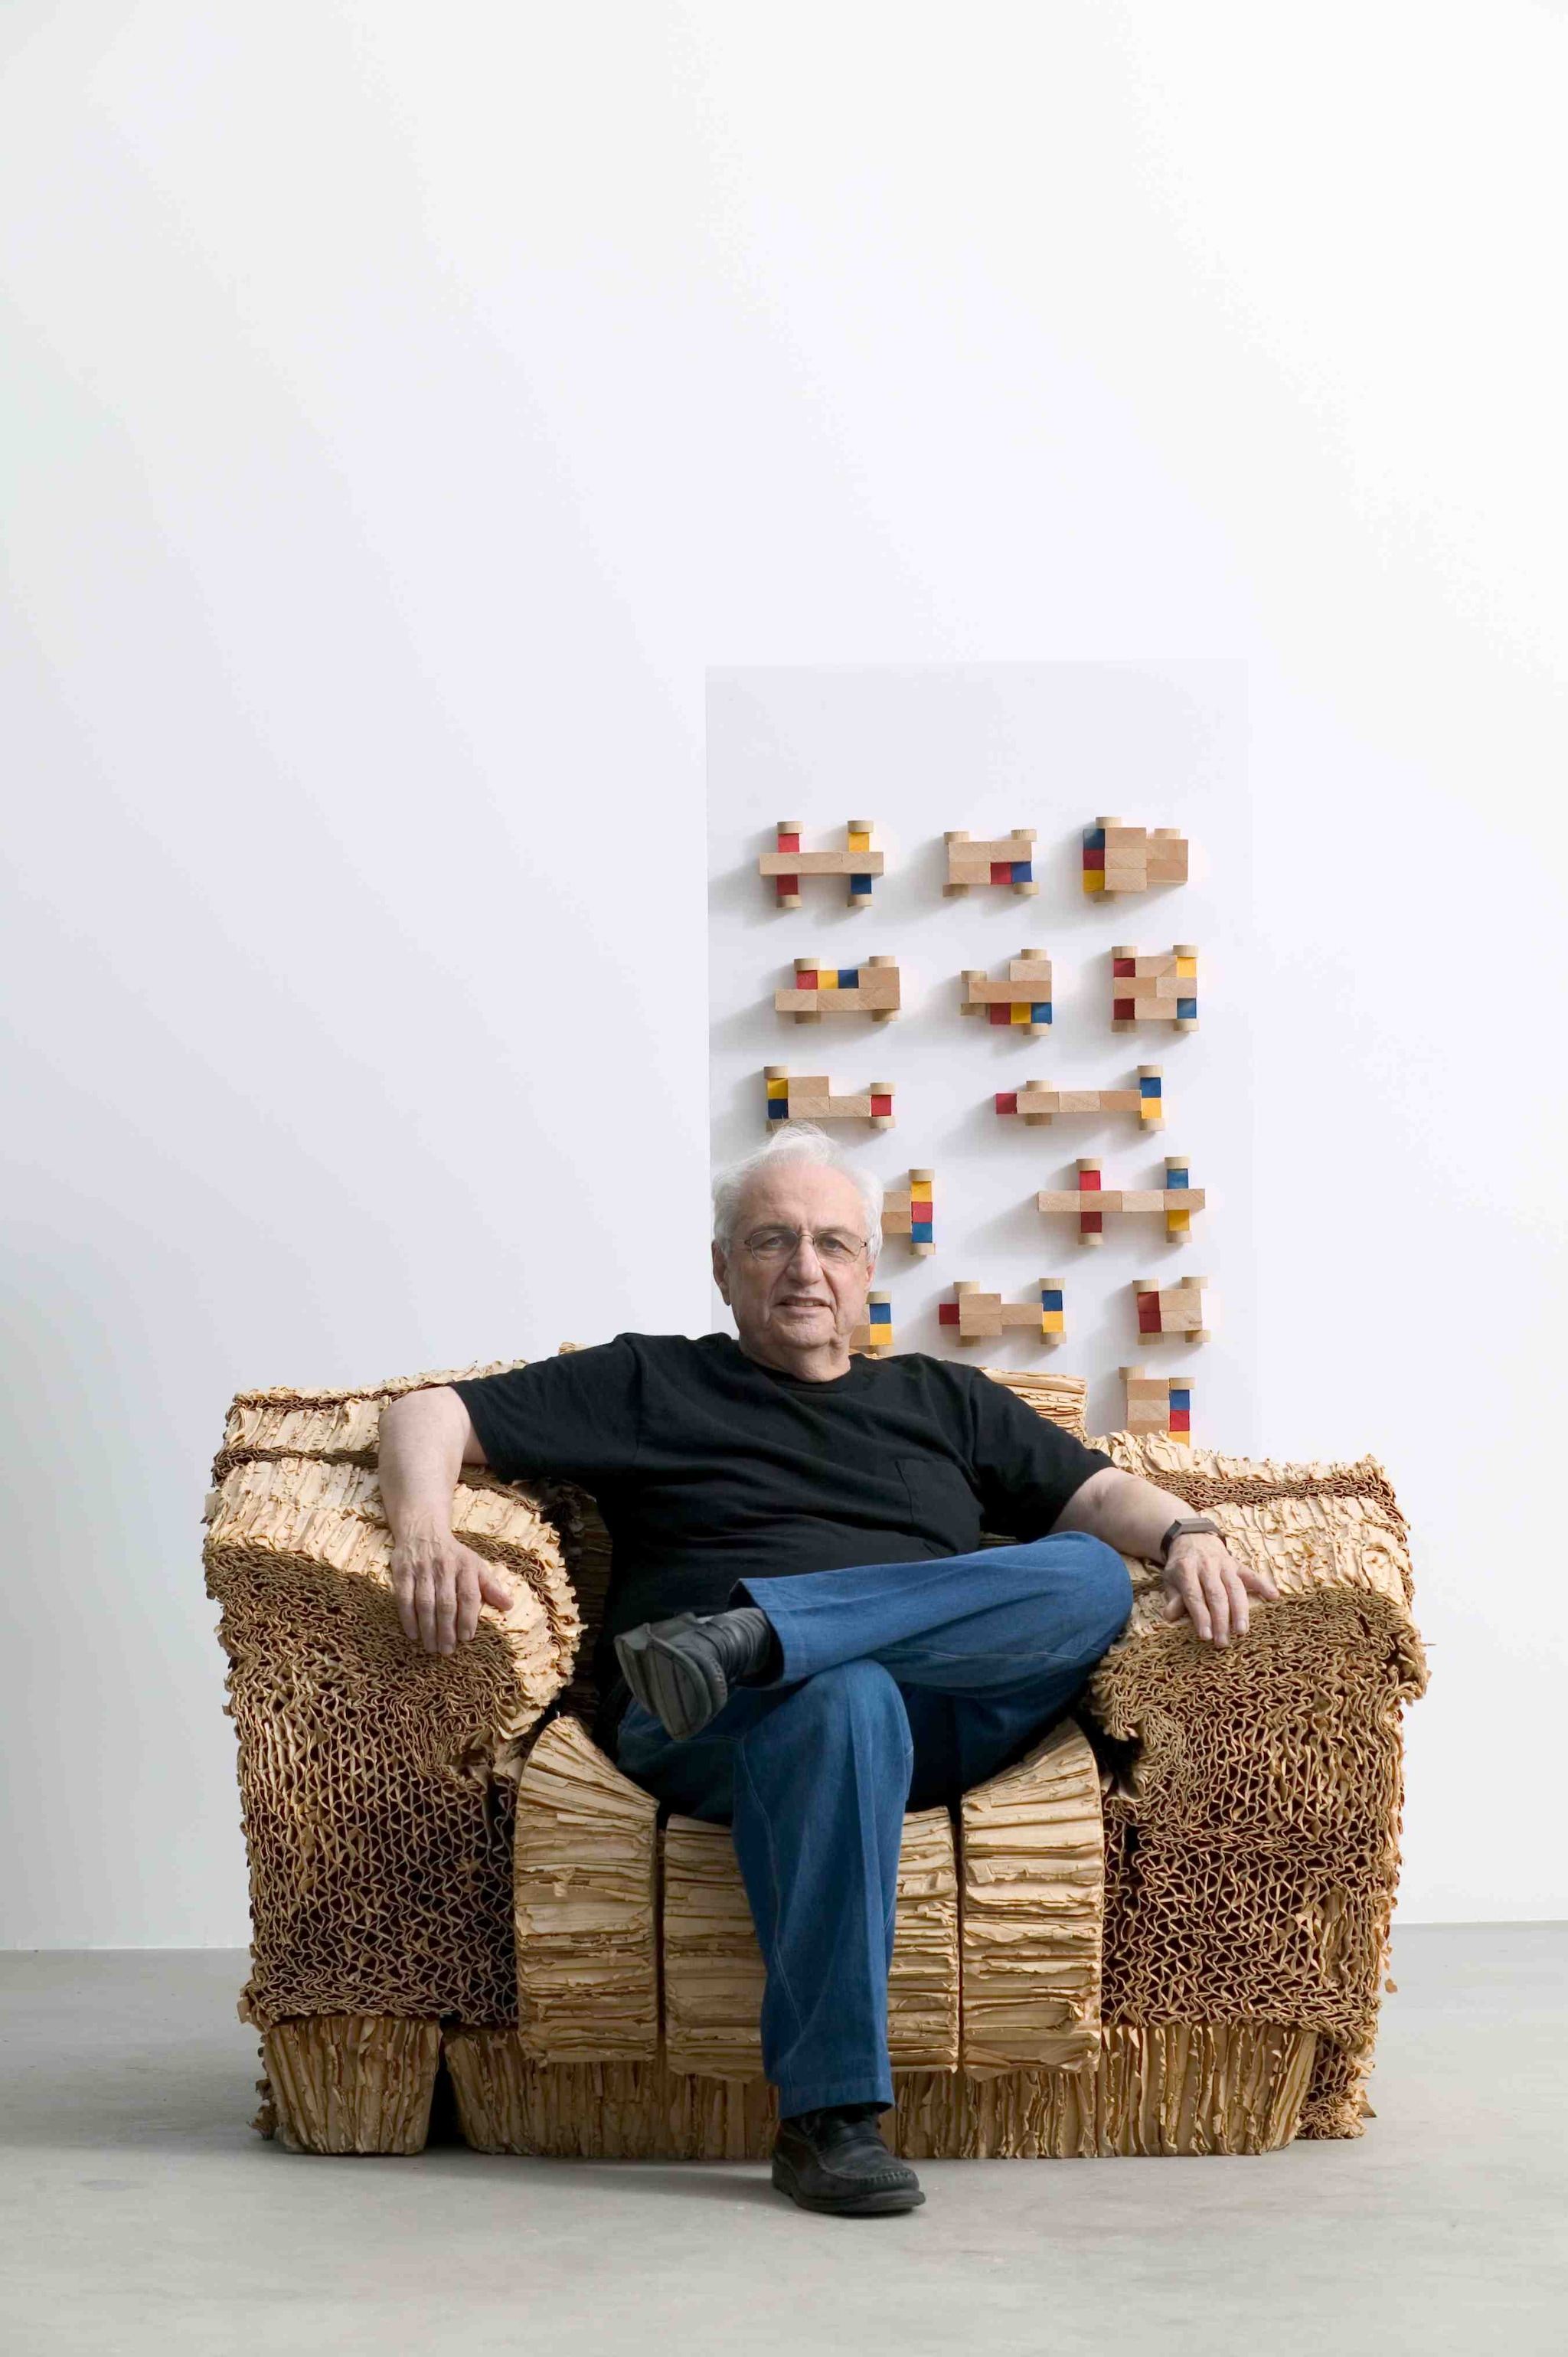 Architect Frank Gehry – I Have an Idea